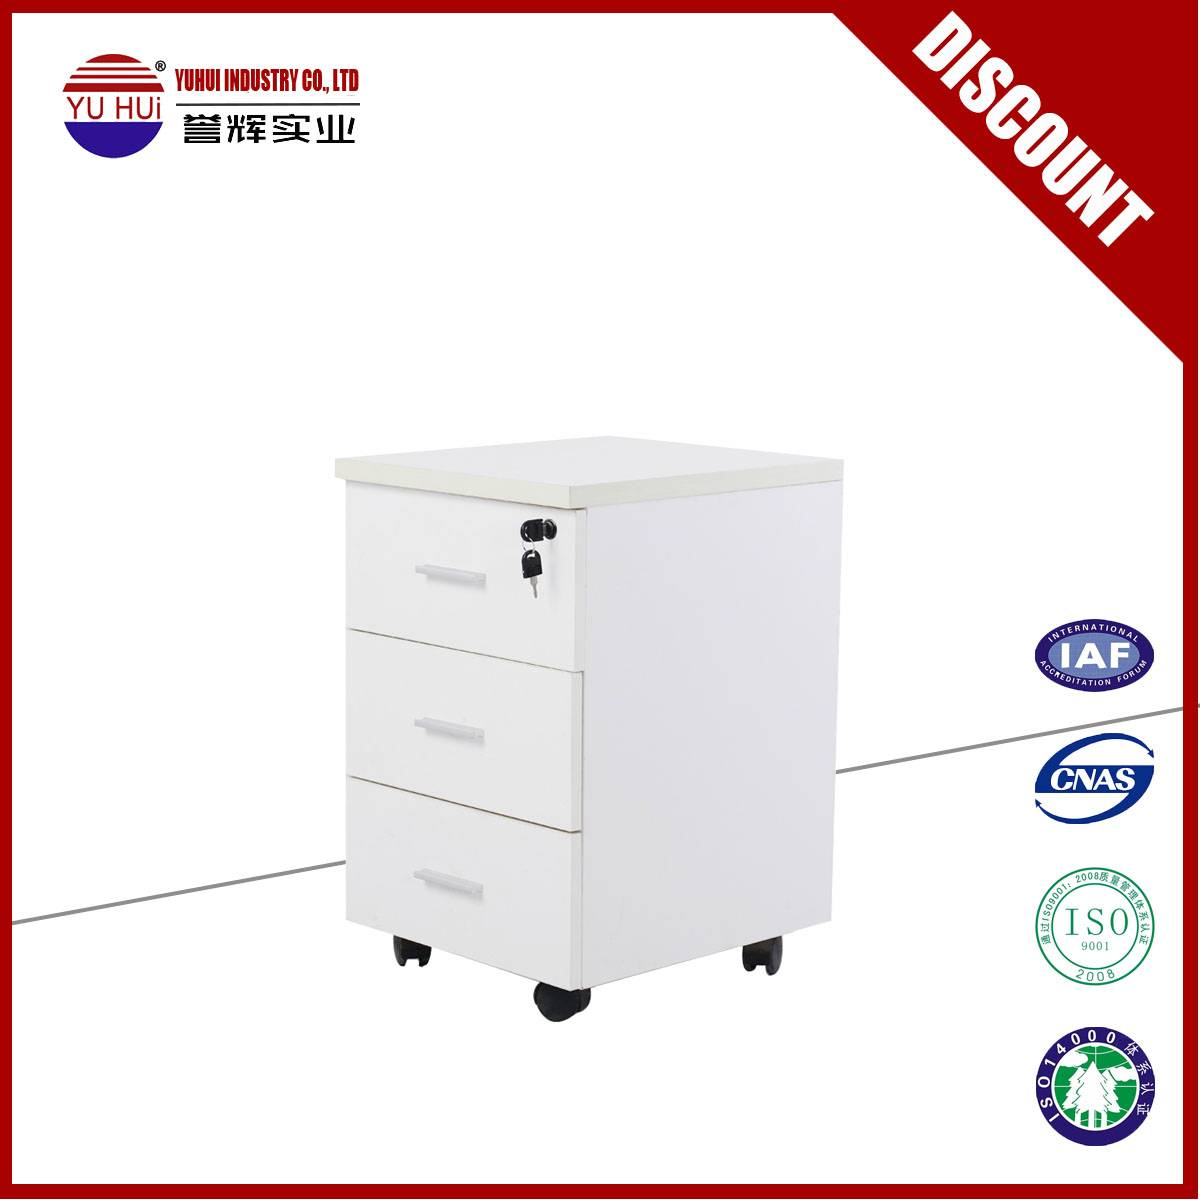 High quality mobile file cabinet in white color